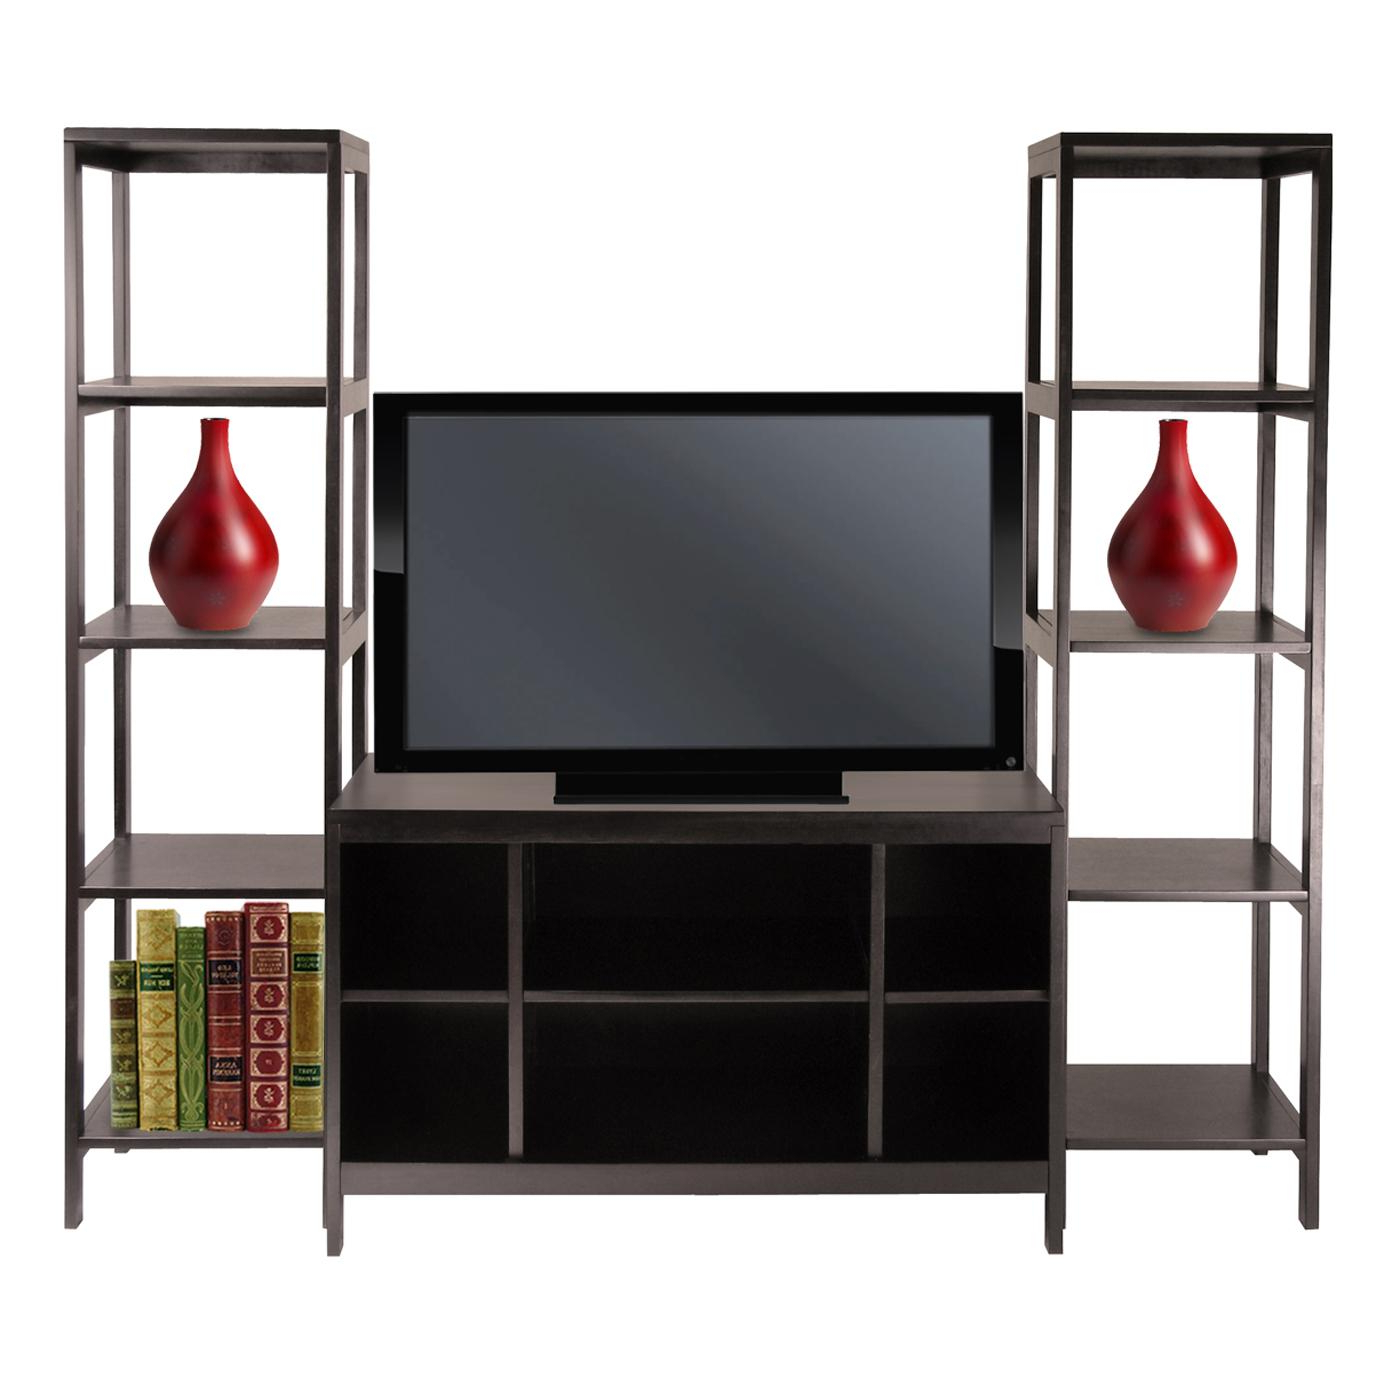 Best And Newest Diy Bookshelf Tv Stand — Home Decorcoppercreekgroup : Bookshelf Within Tv Stands And Bookshelf (View 14 of 20)